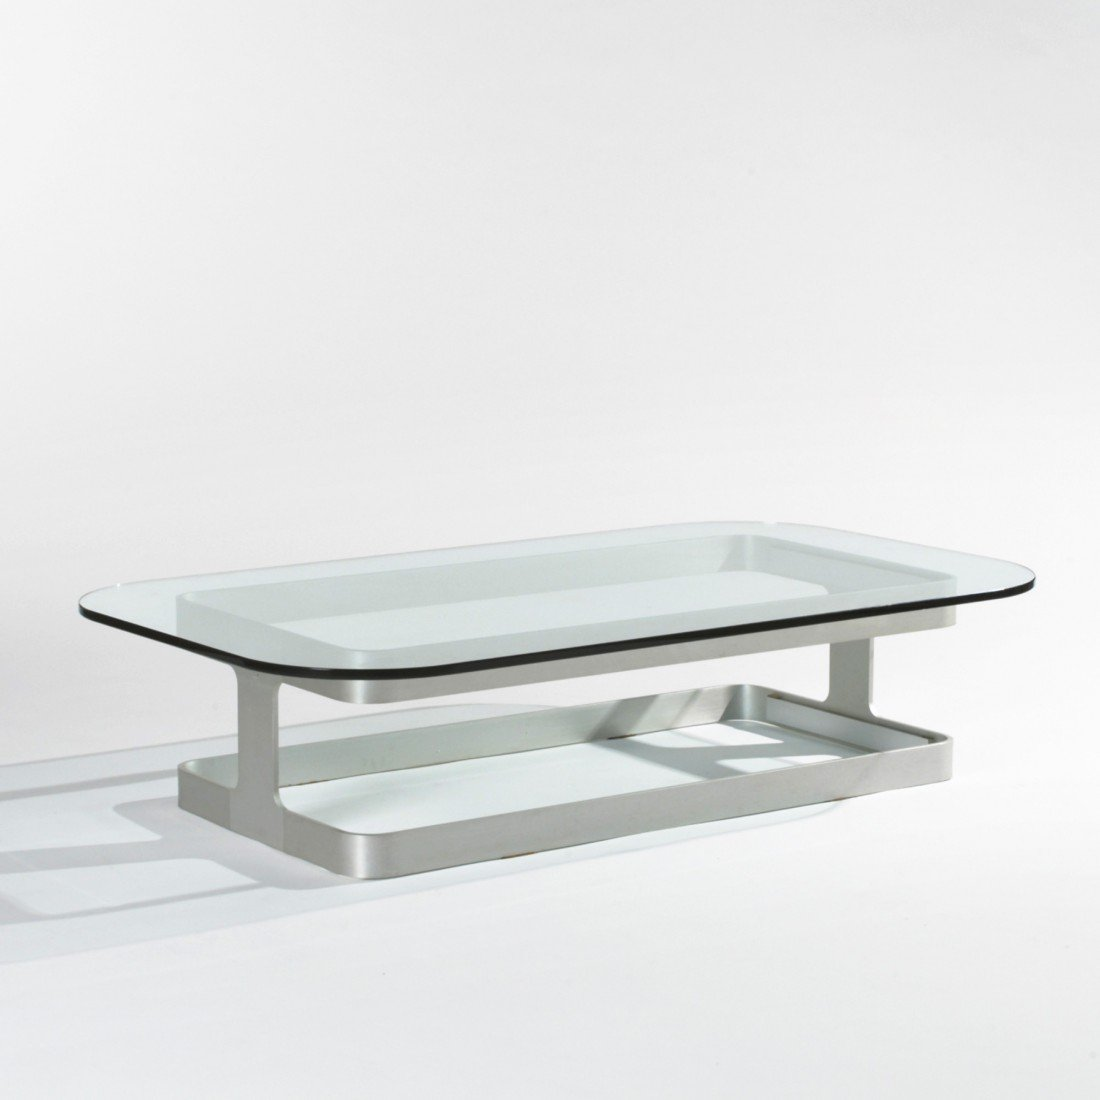 222: French coffee table